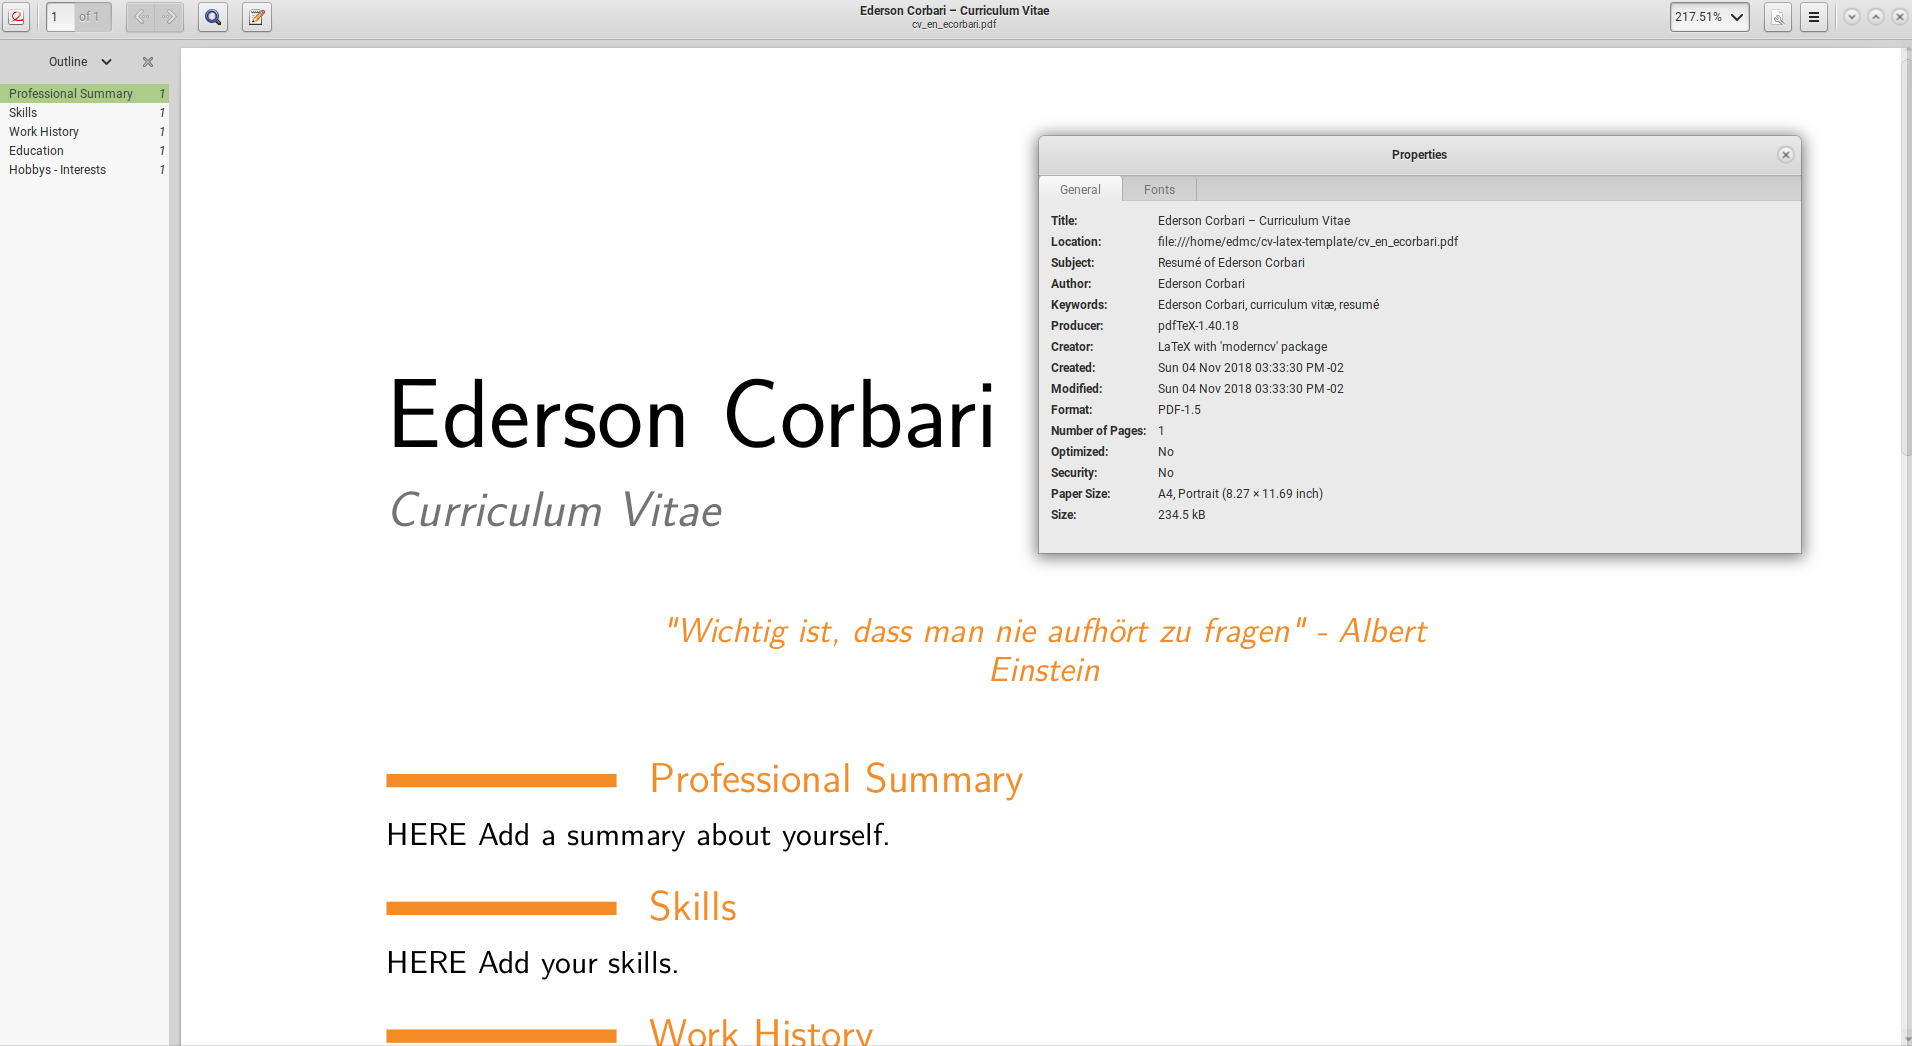 writing a curriculum vitae in latex ederson corbari